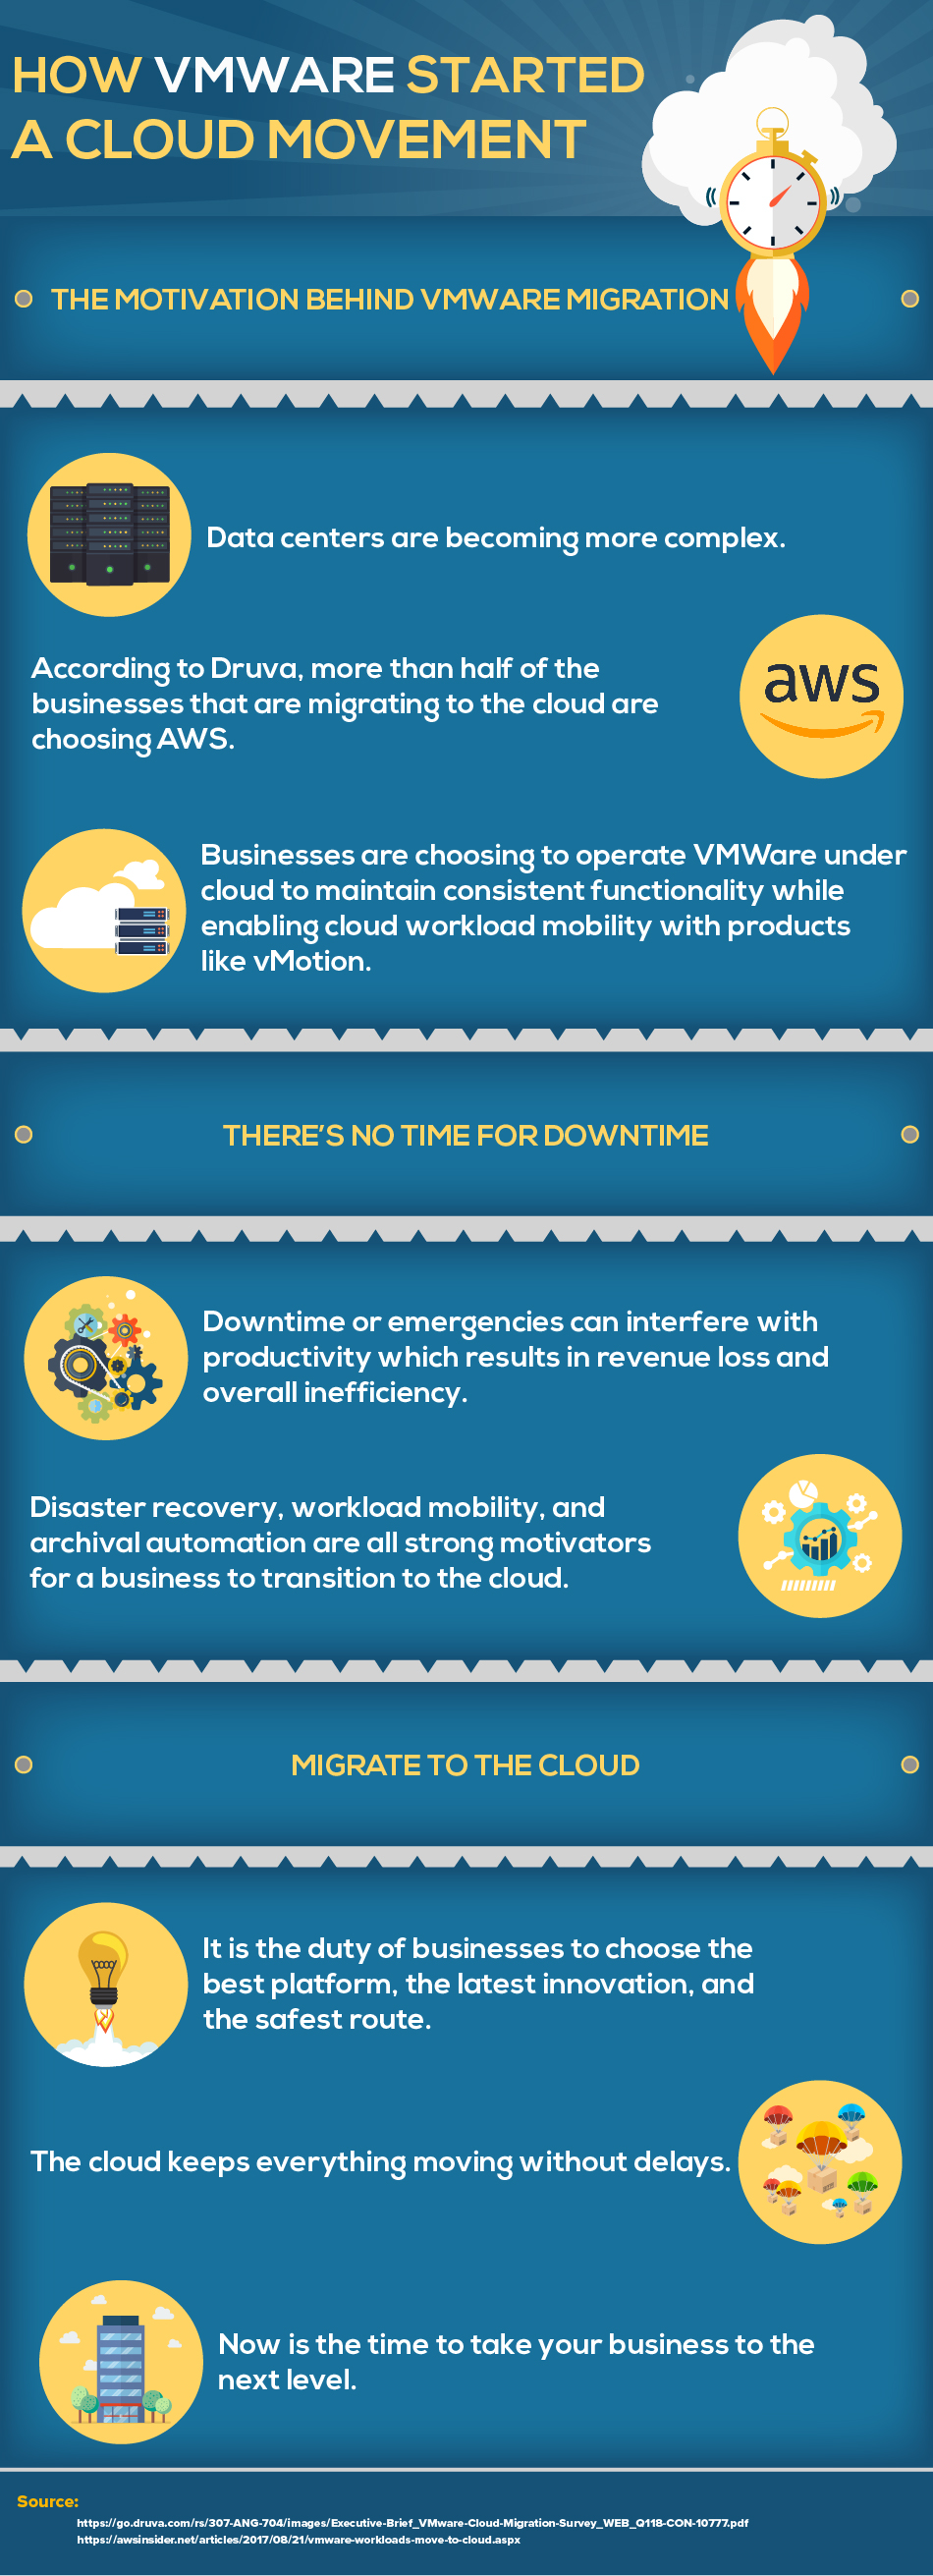 VMWare migration to the cloud